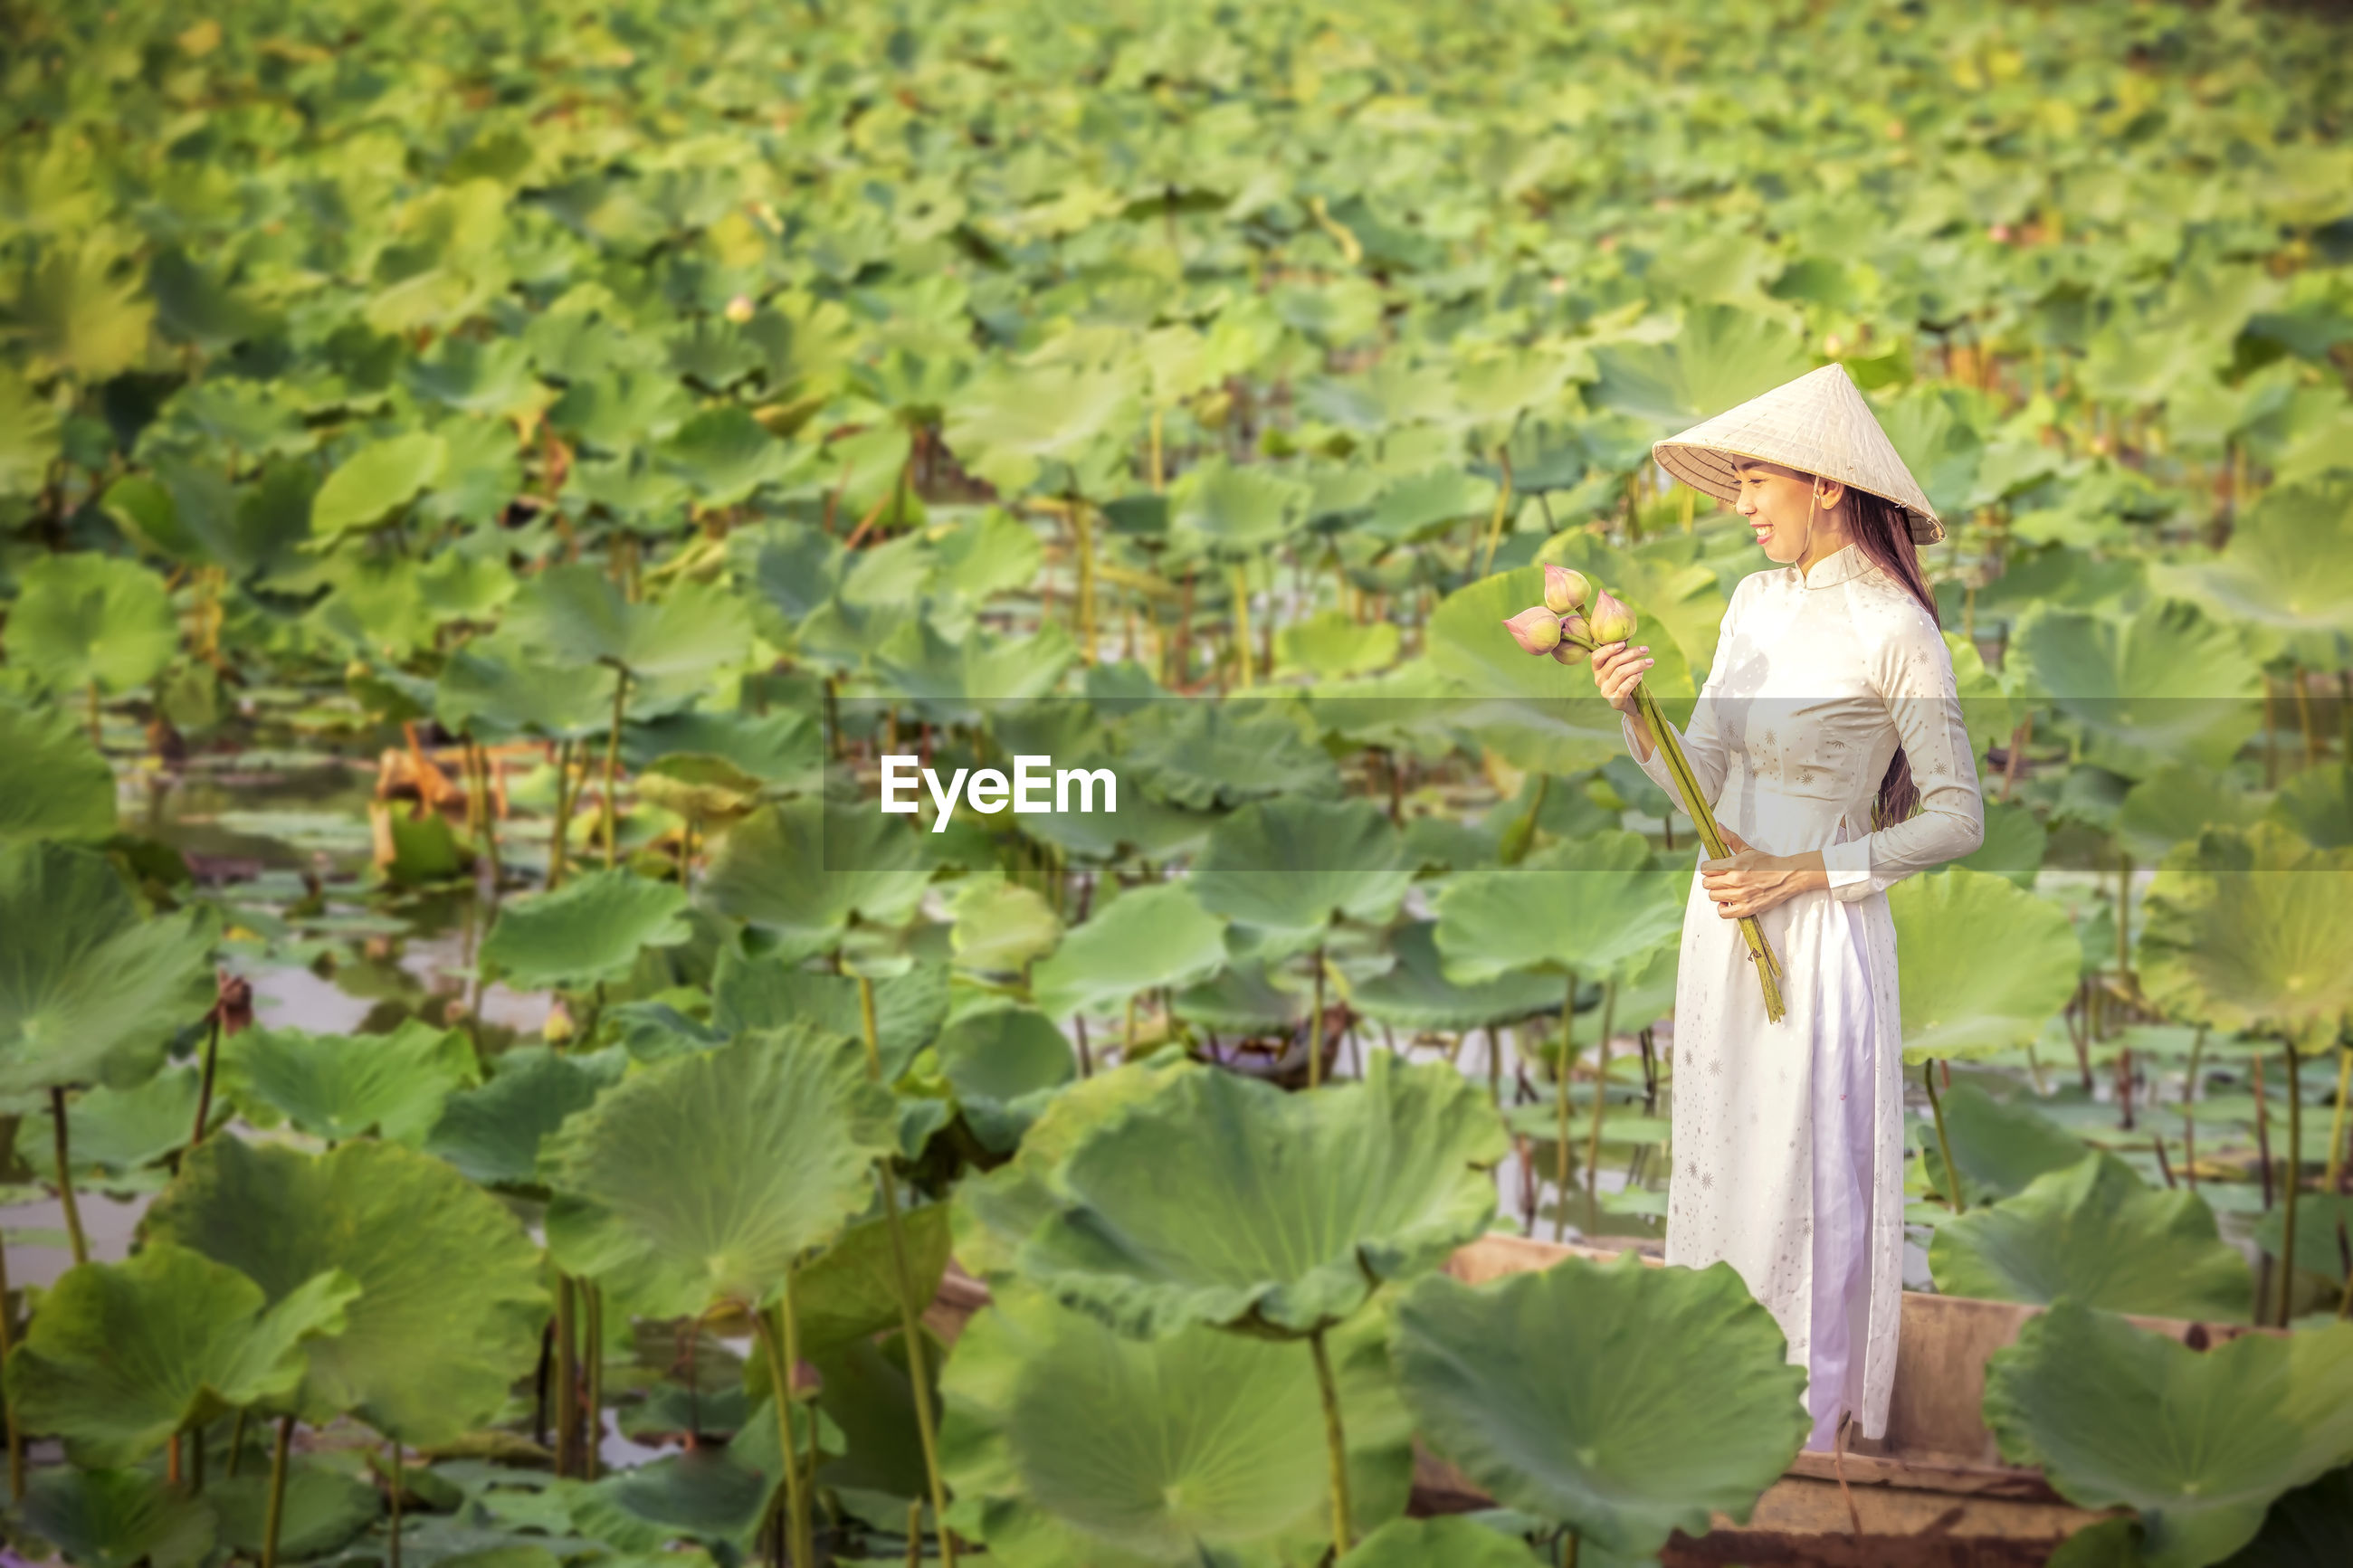 Woman holding lotus water lilies while standing on rowboat in pond